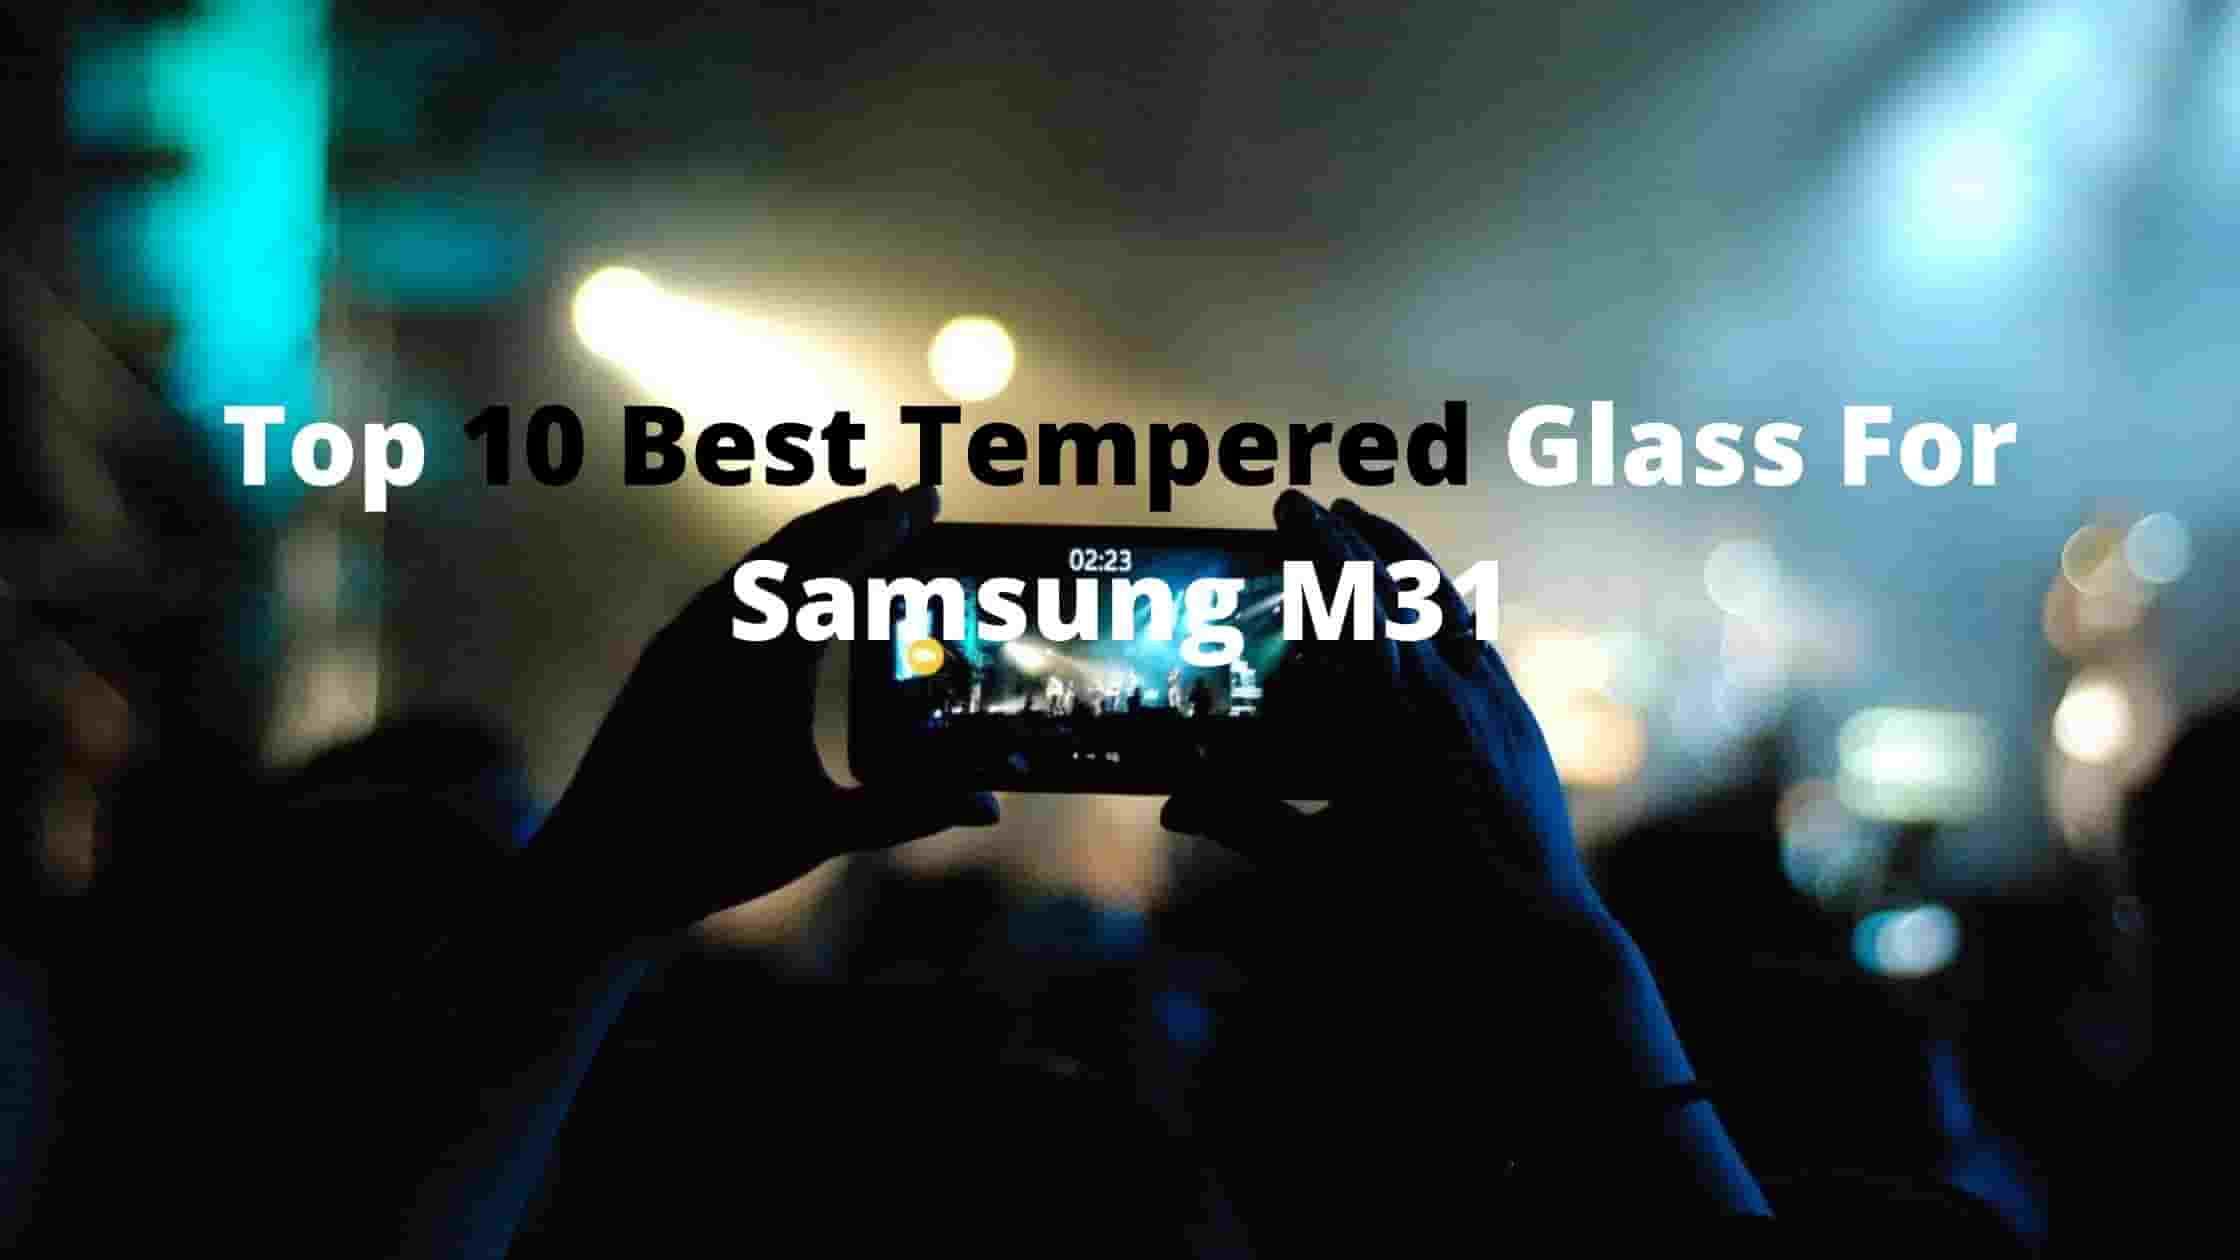 Now Top 10 Best Tempered Glass For Samsung M31 in India 2021 [Bengali]